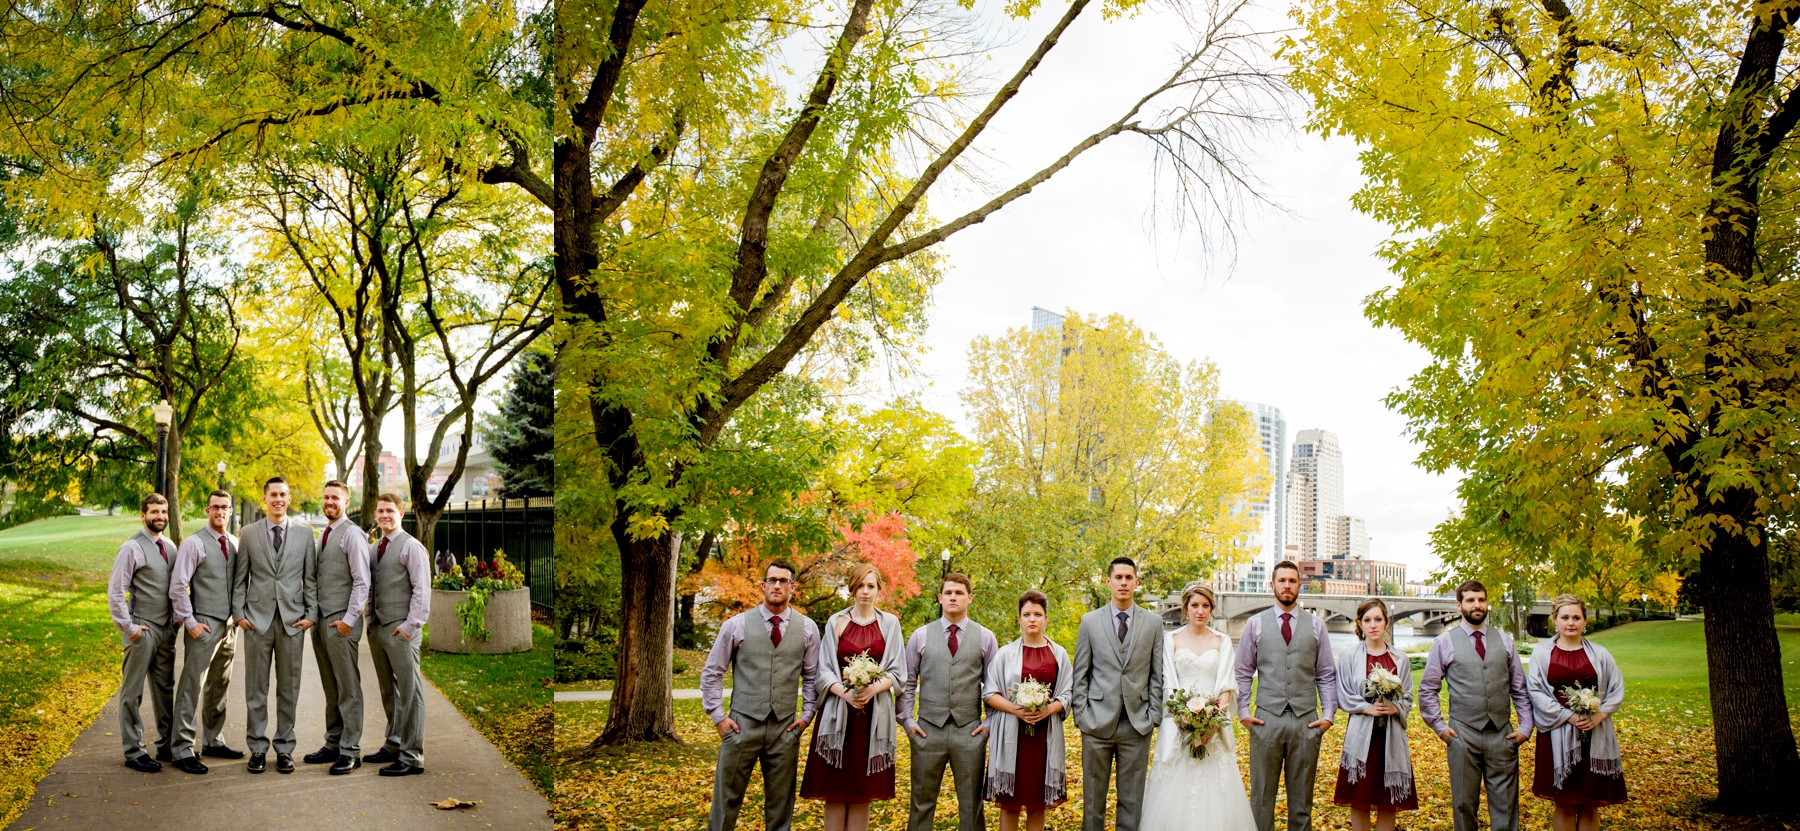 Brandon_Shafer_Photography_Kristen_Corey_Downtown_Grand_Rapids_Fall_Wedding0033.JPG